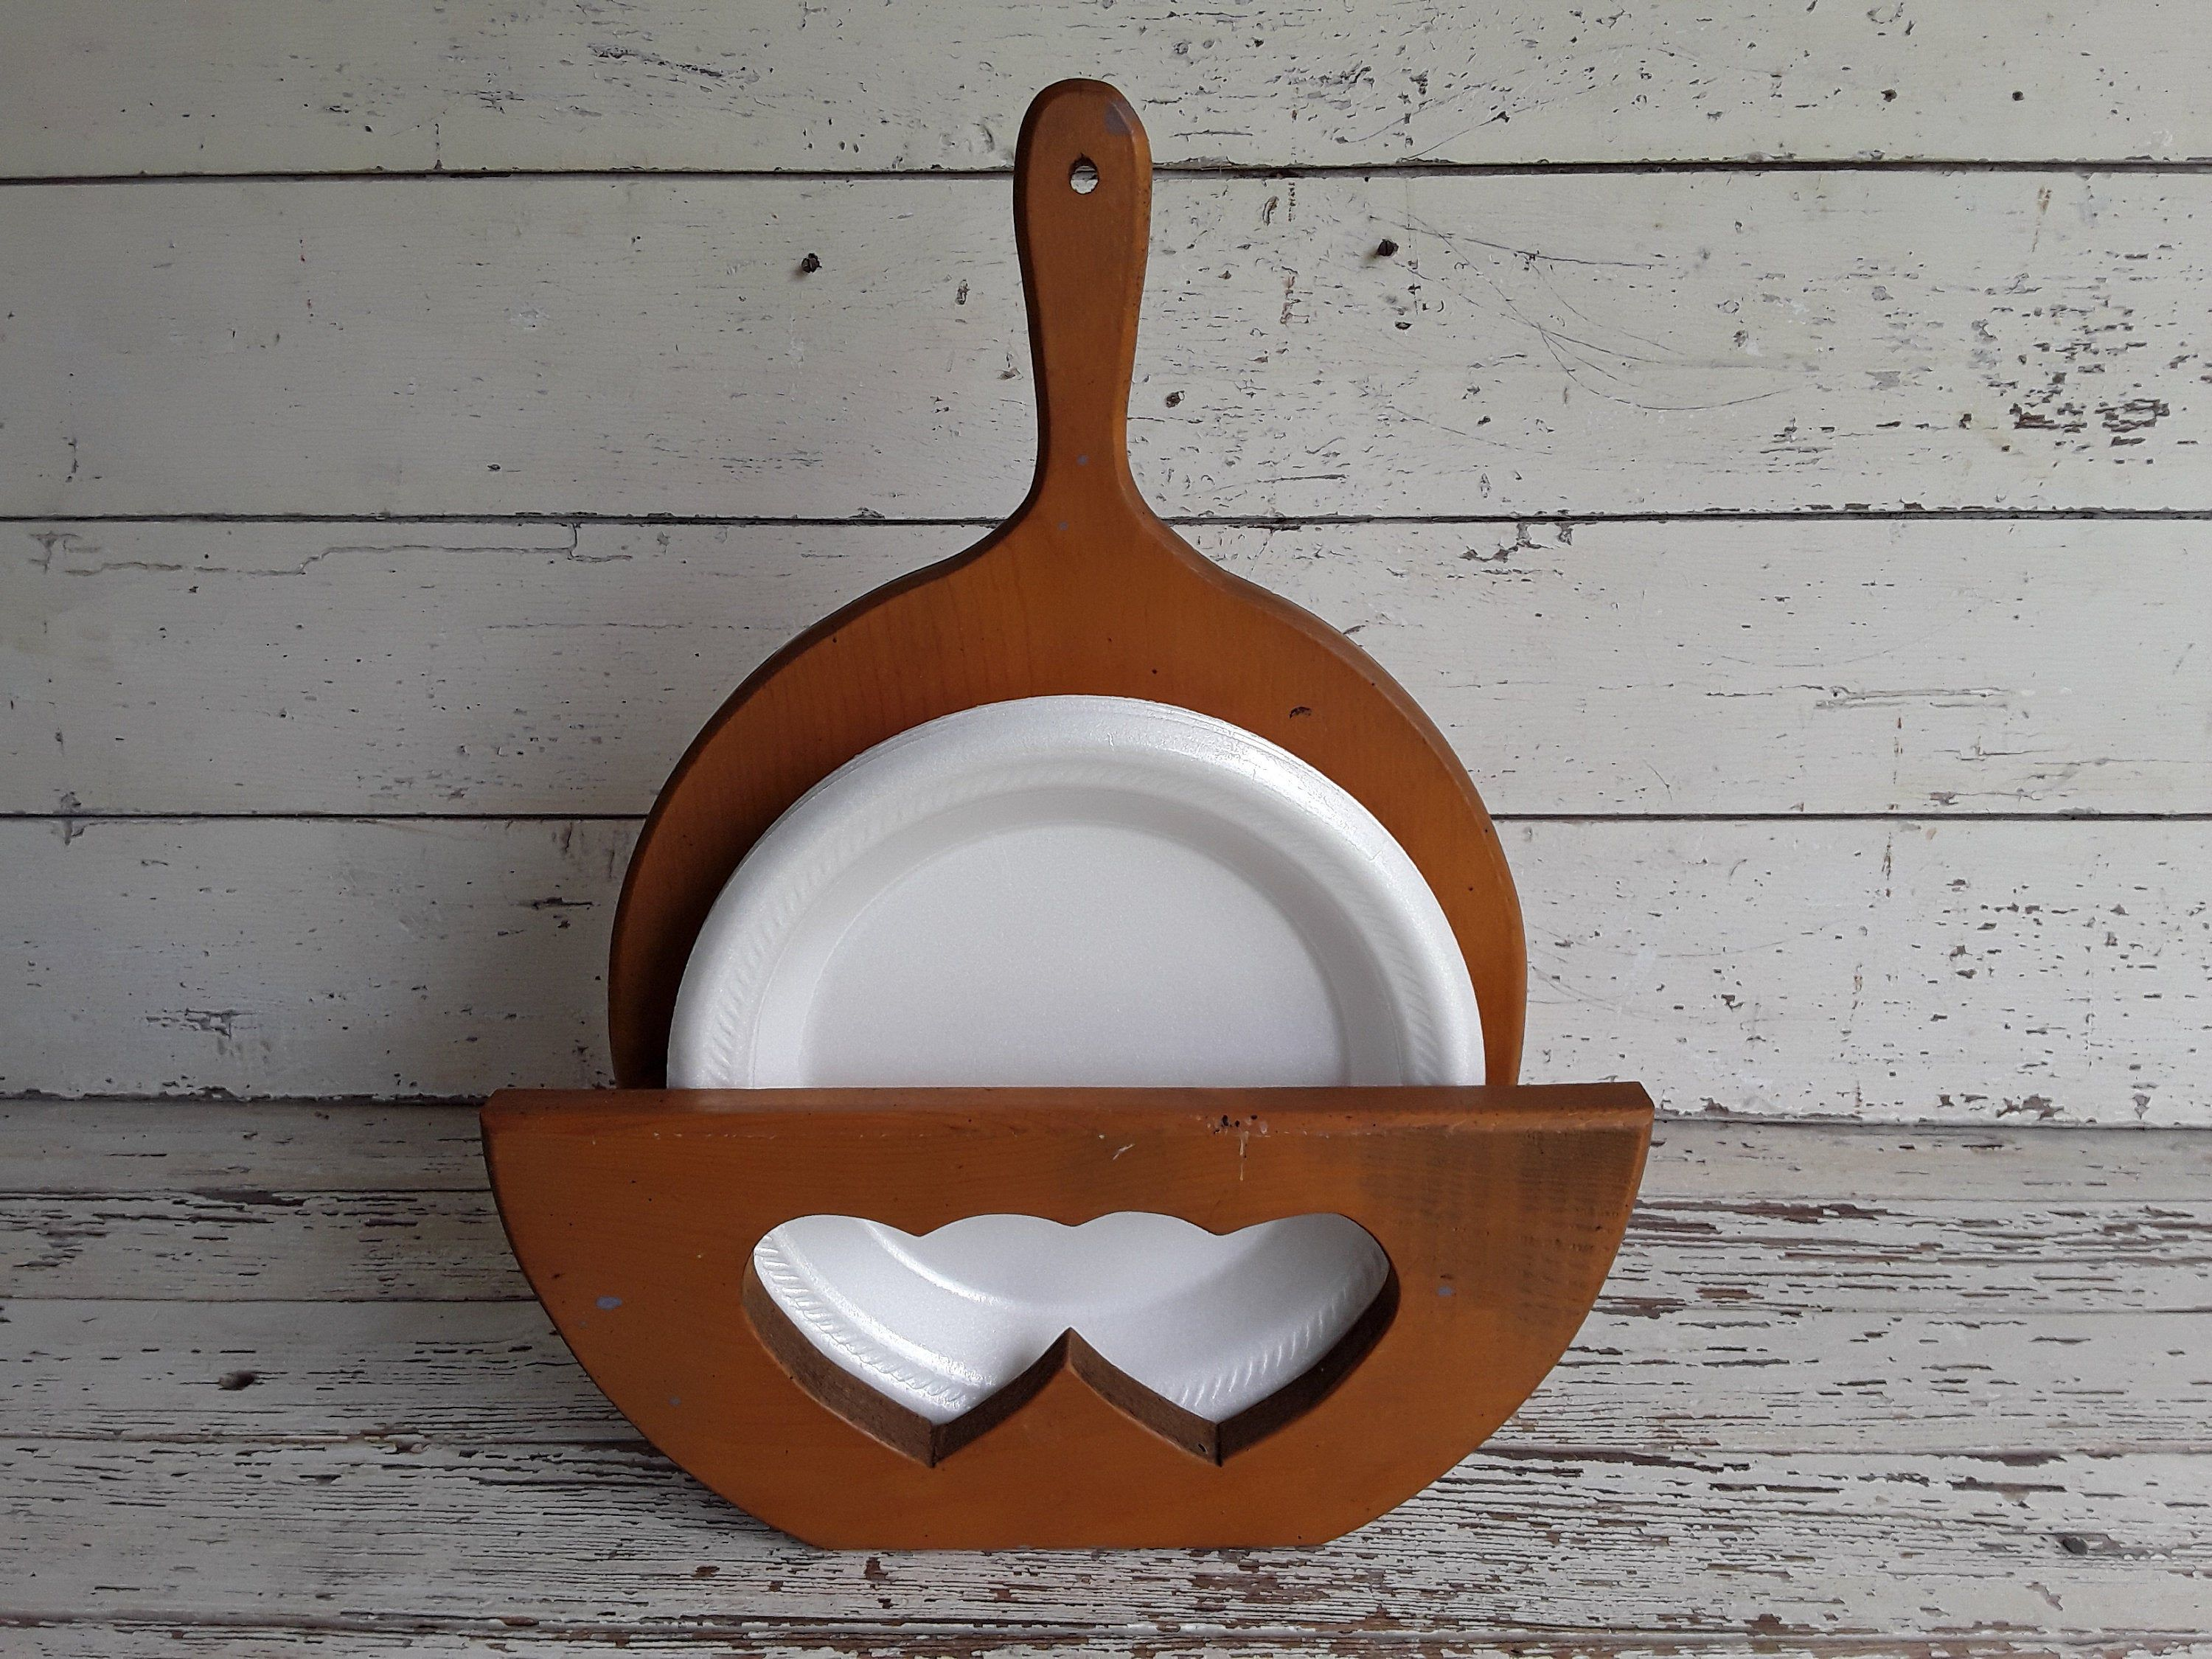 Vintage Wooden Paper Plate Holder Country Style Decor Wooden Wall Hanger Or Shelf Heart Design Iron Skillet Shape Wooden Plates Paper Plate Holders Wooden